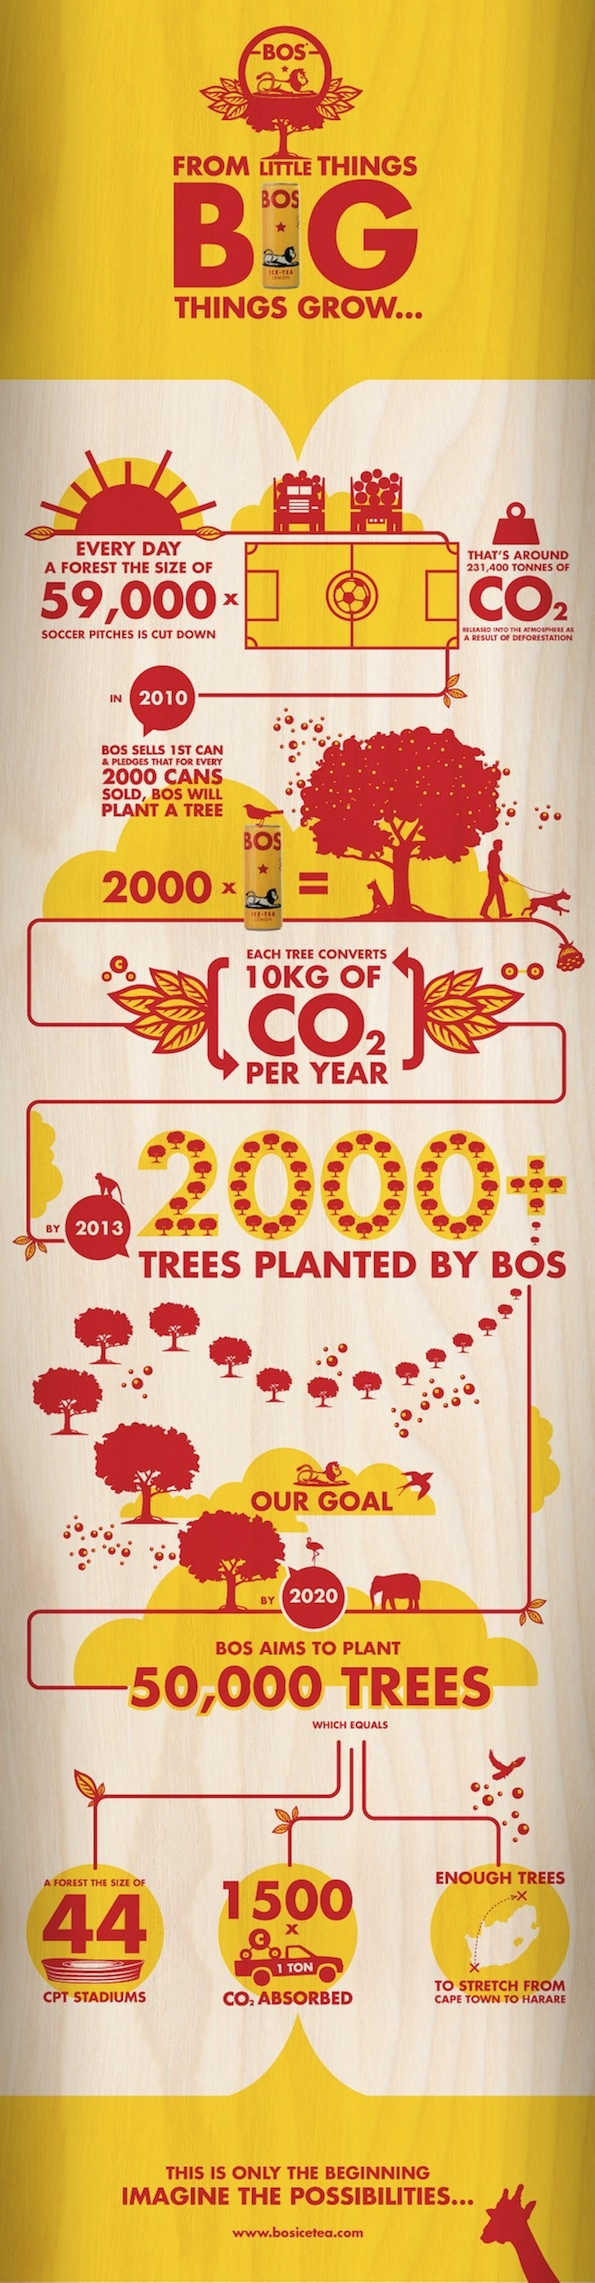 The @Bo Salling Ice Tea infographic done by @CowAfrica. Very cool! #projectza